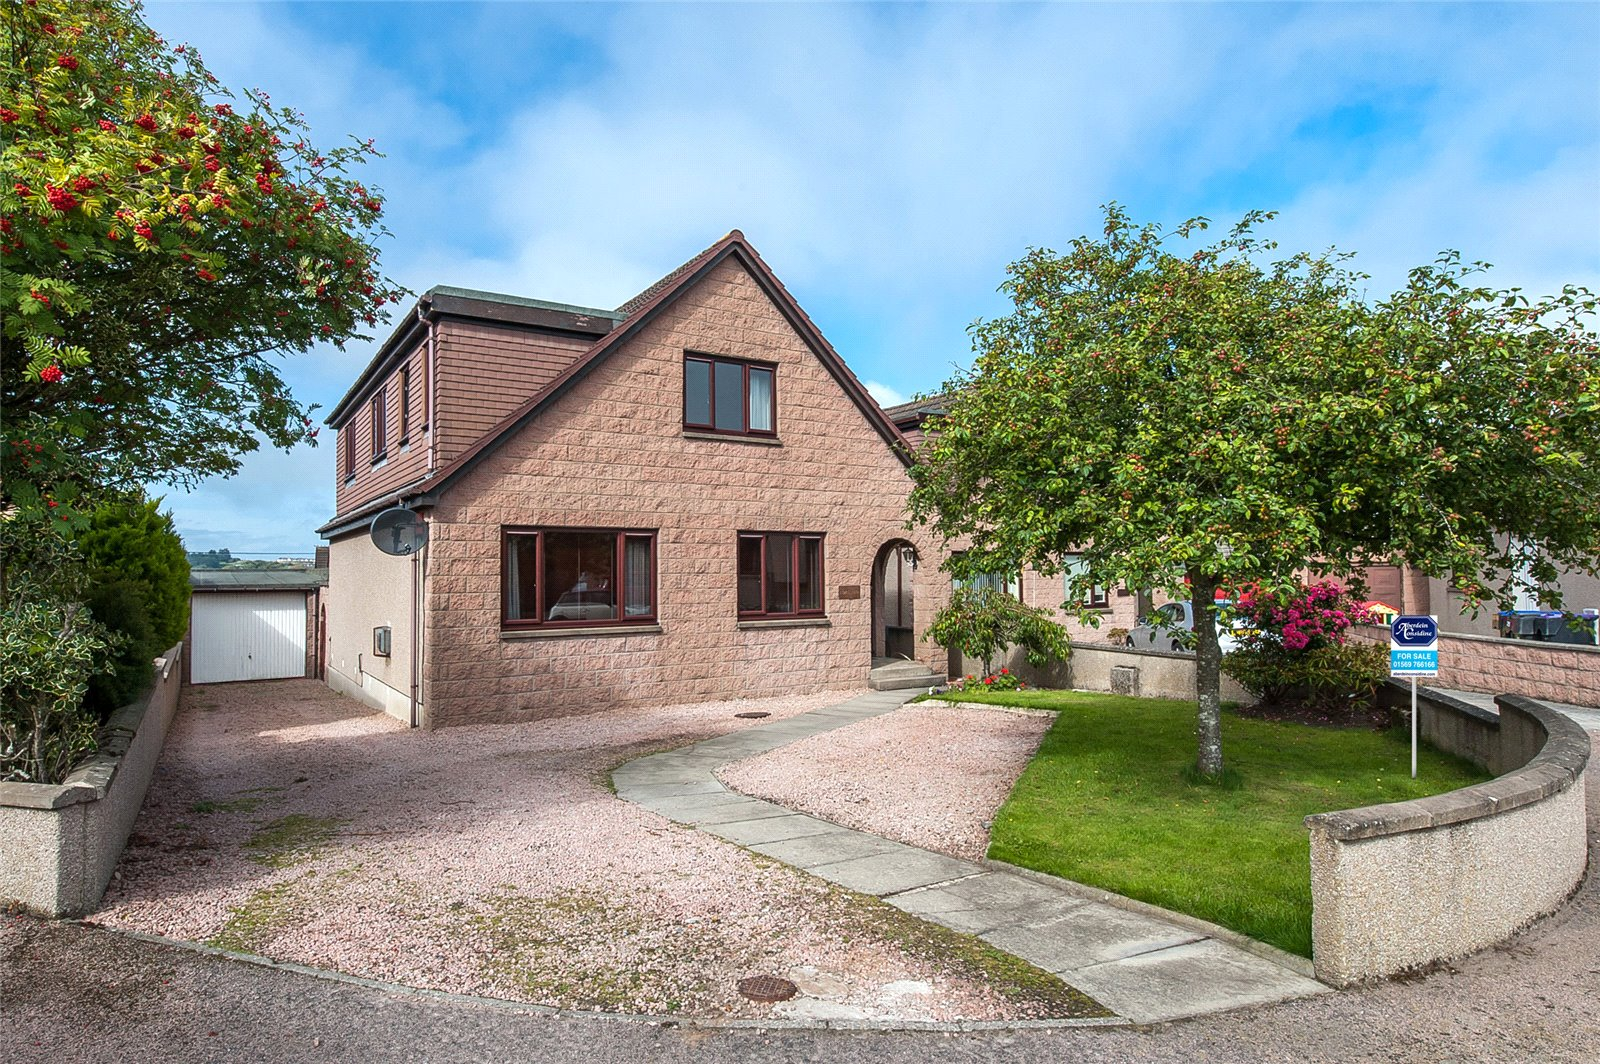 Our latest properties for sale and to let (14th September 2018)